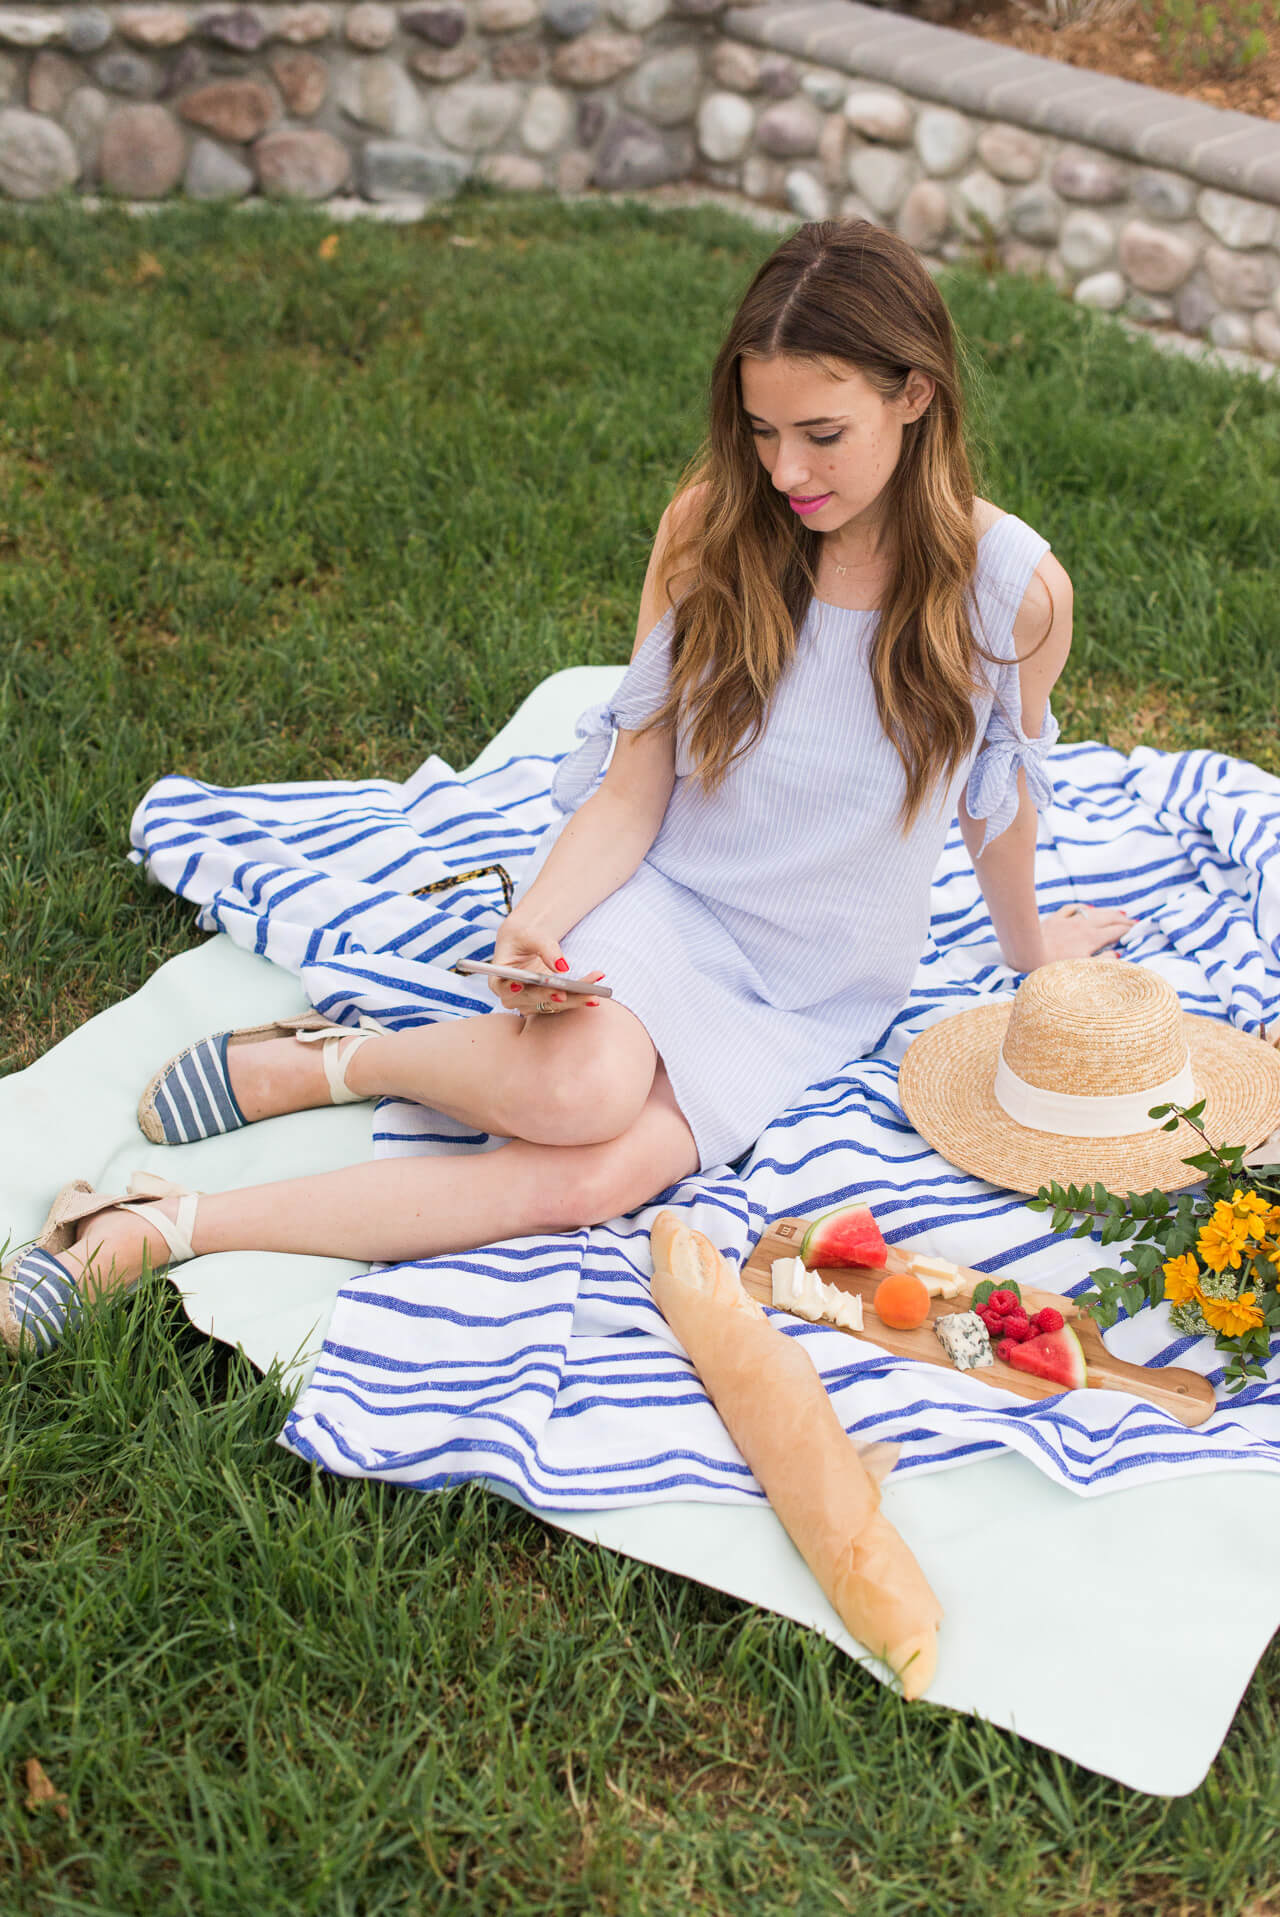 love this dress and shoes for a picnic - M Loves M @marmar